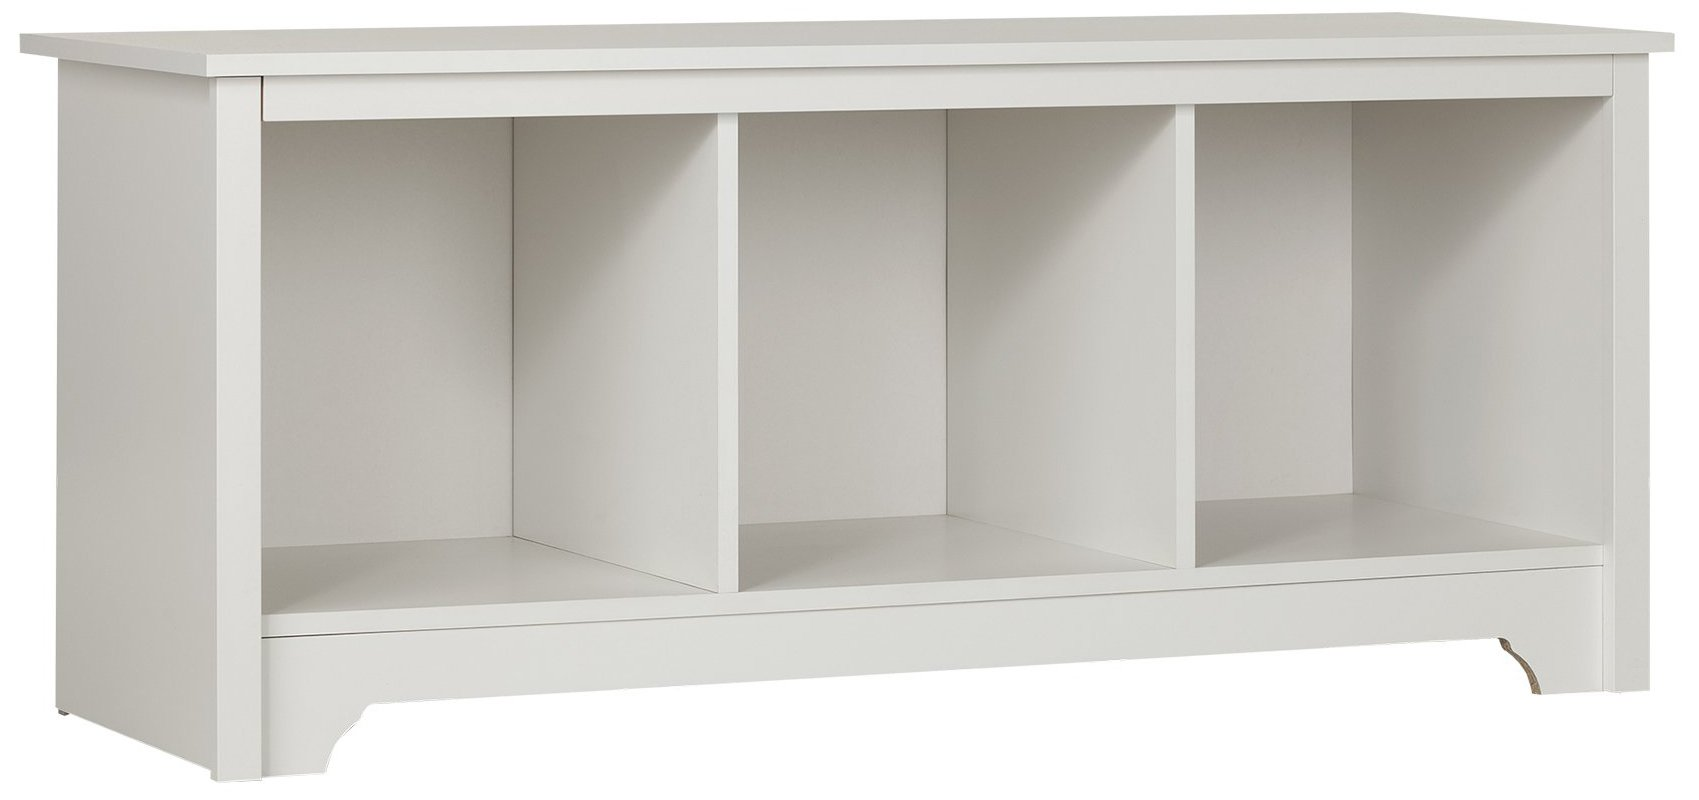 South Shore Entryway Cubby Storage Bench, Pure White by South Shore